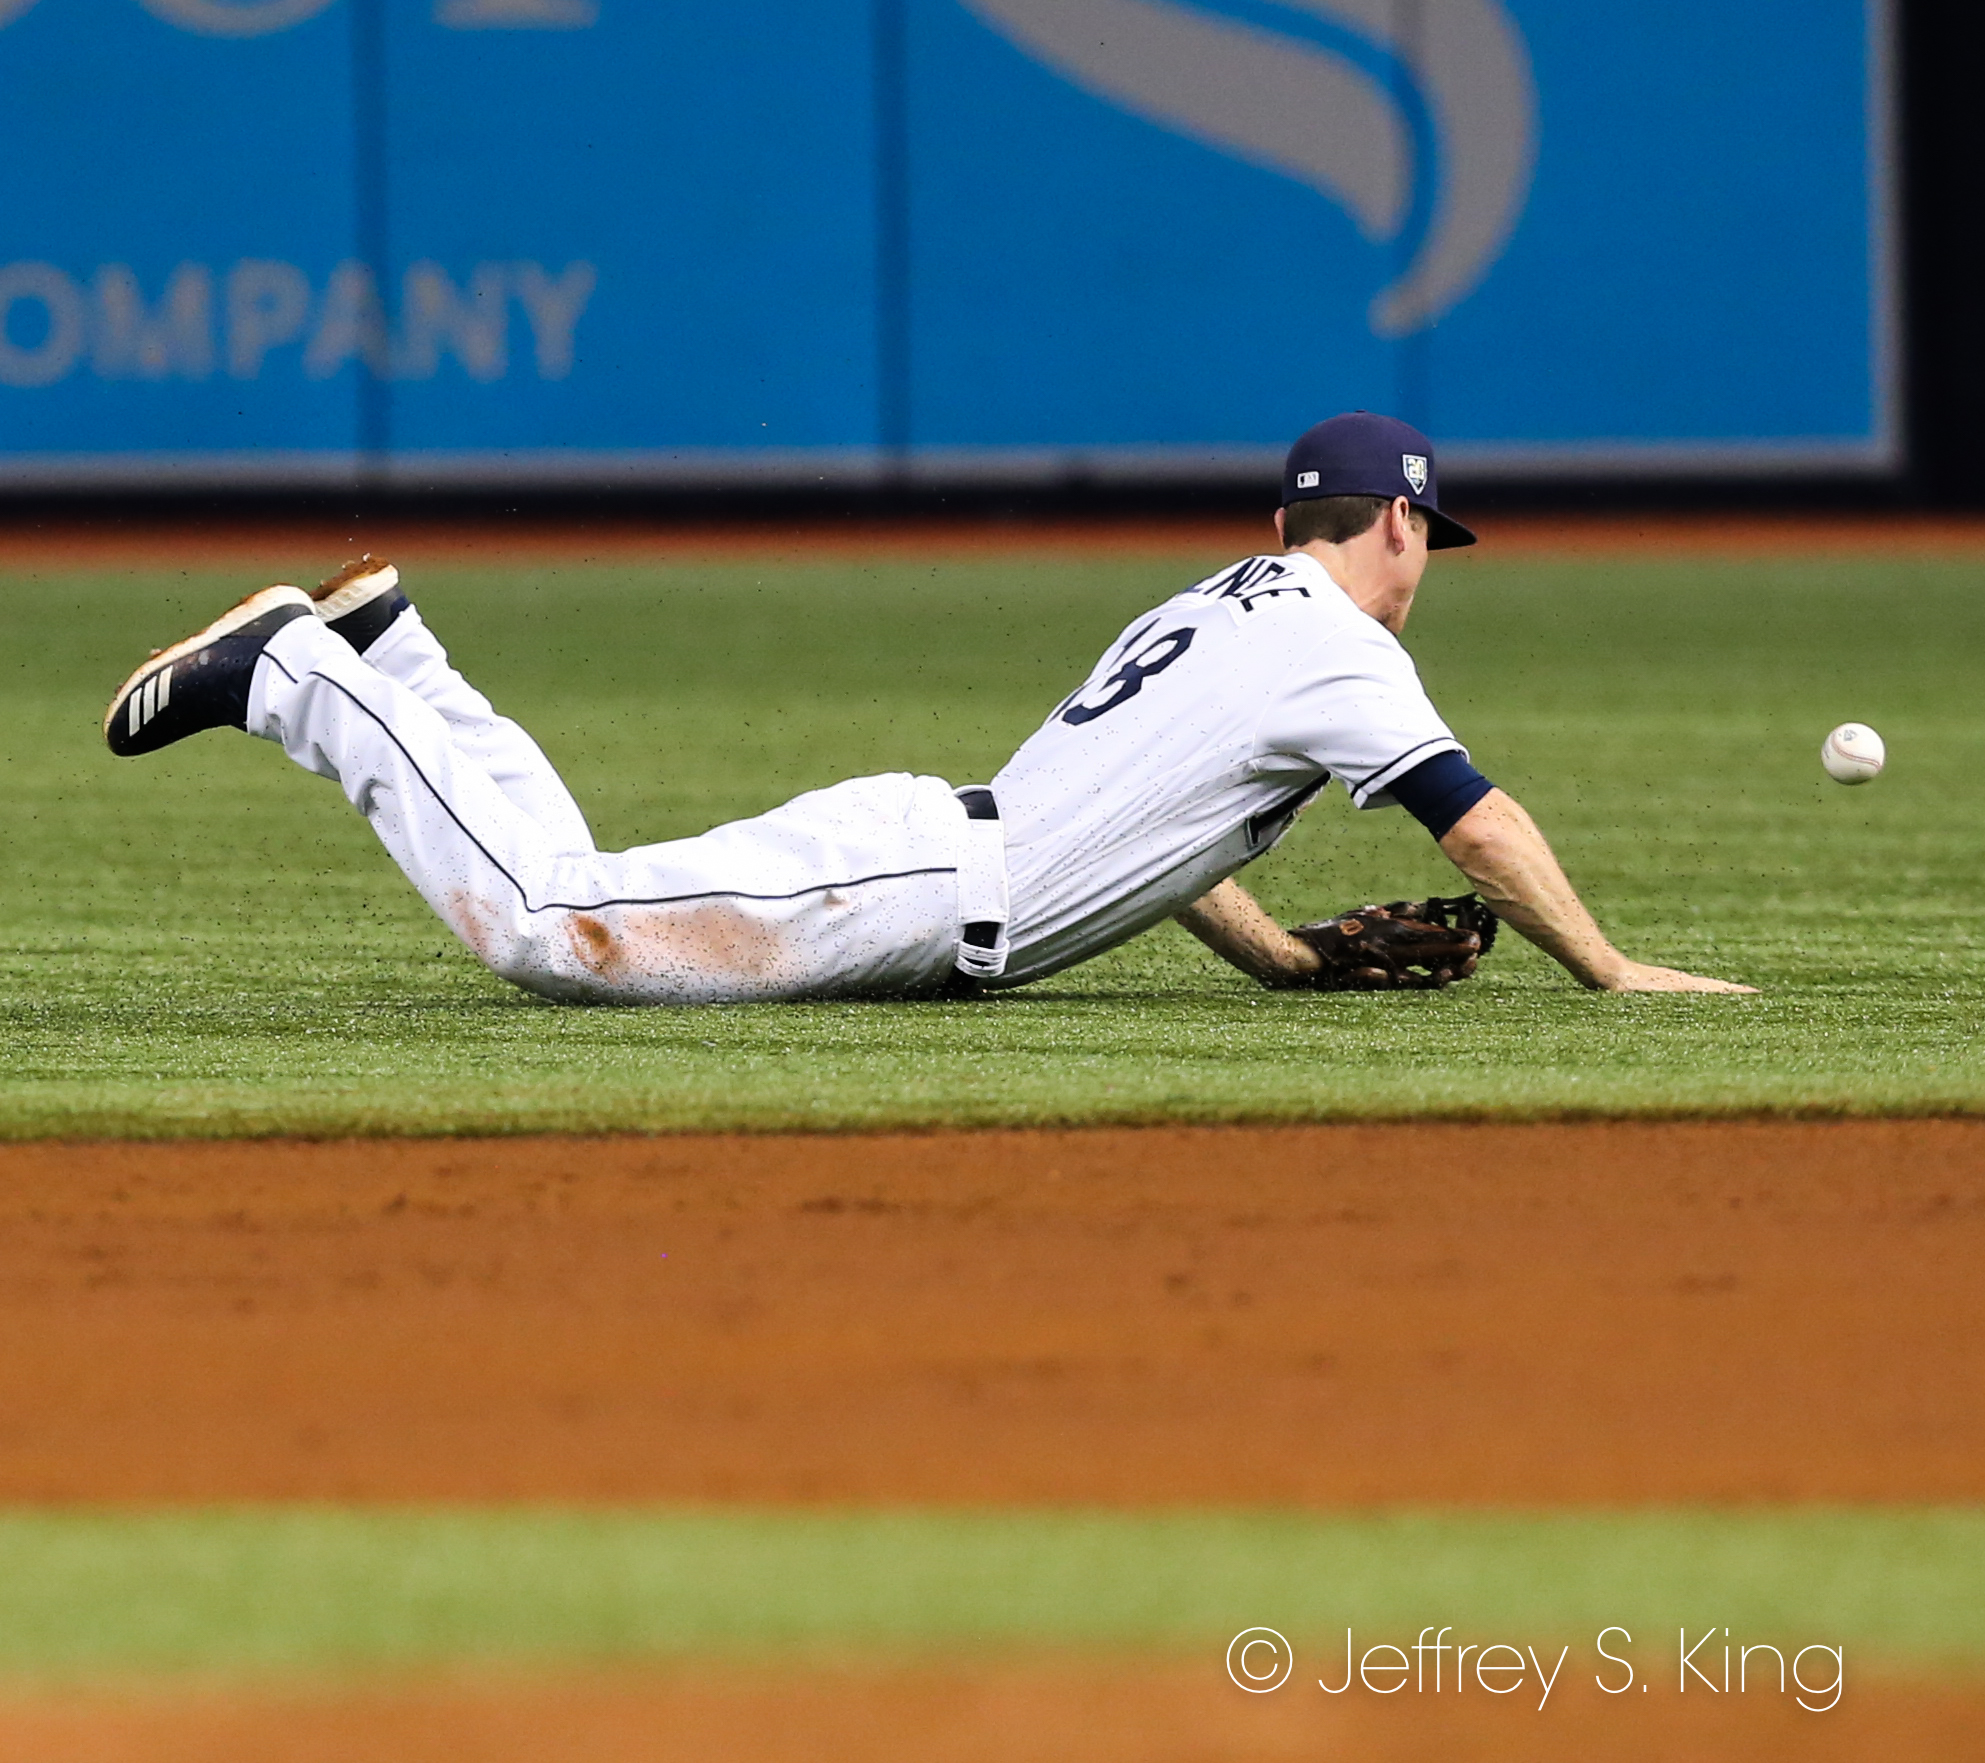 Wendle dives, but can't corral the ball./JEFFREY S. KING